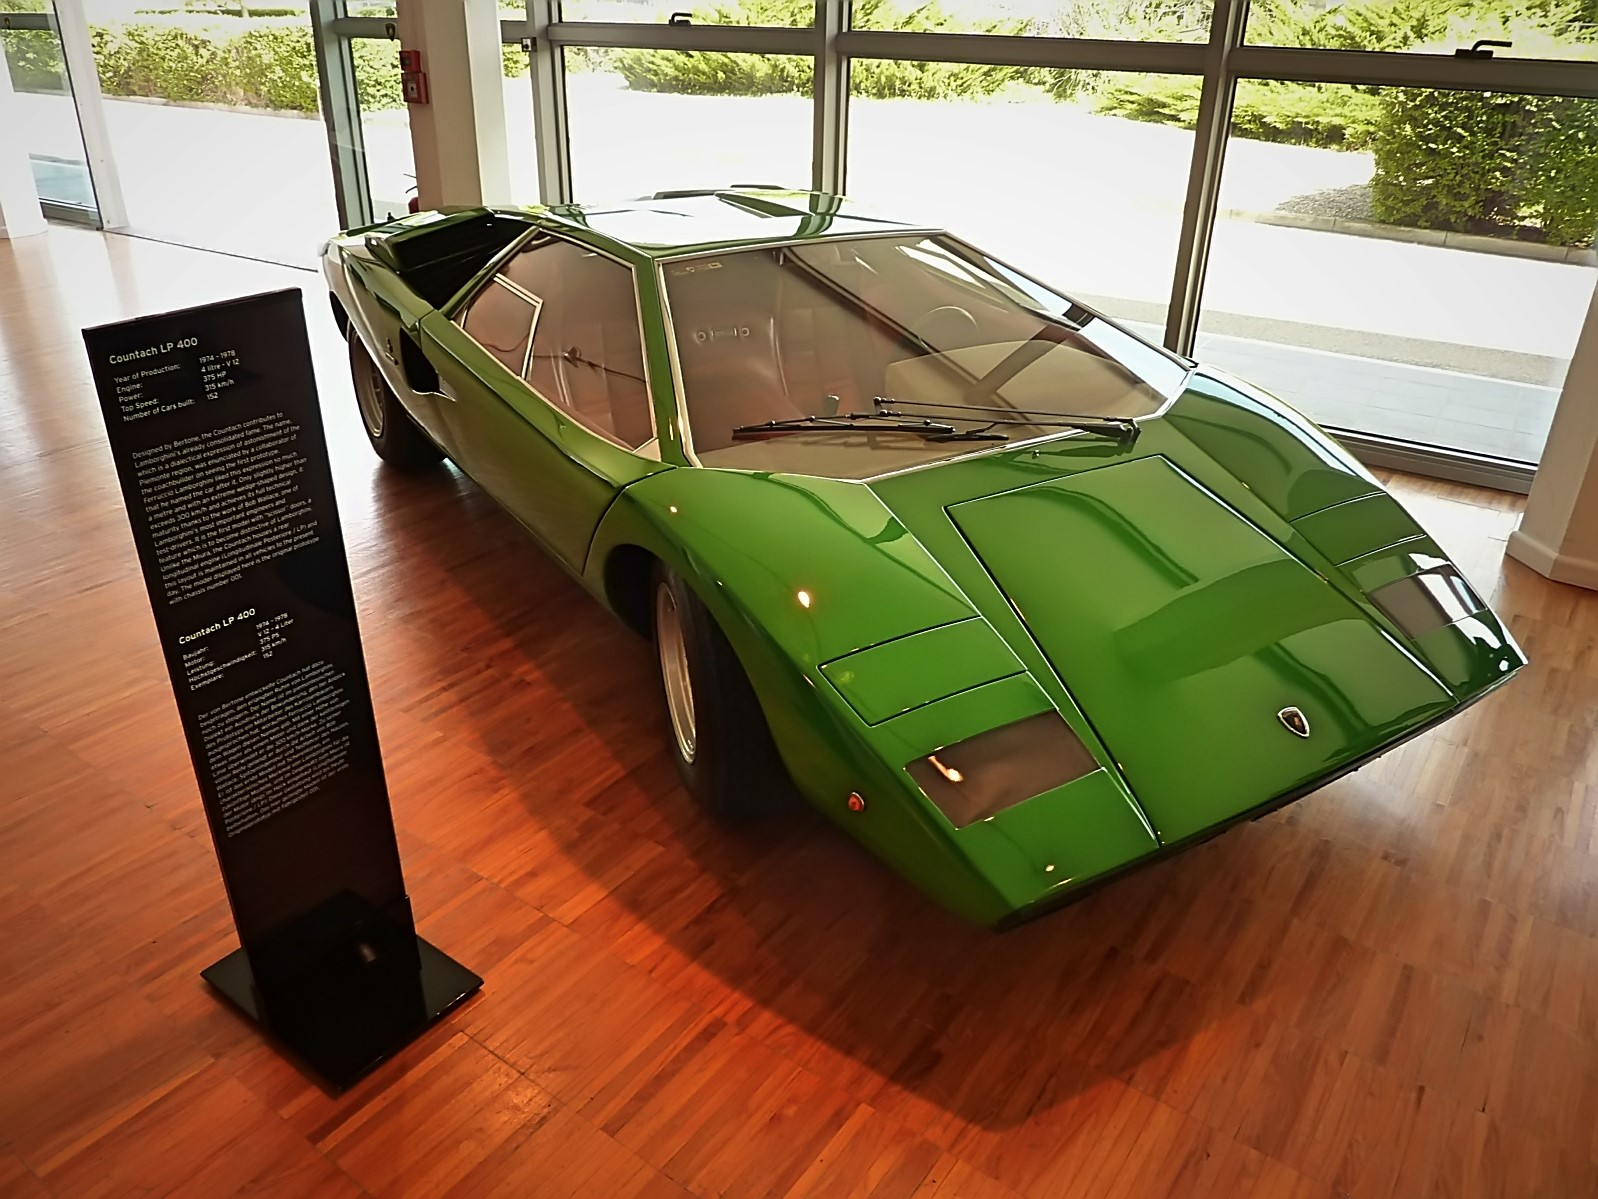 1972 Countach LP400 prototype (13).jpg